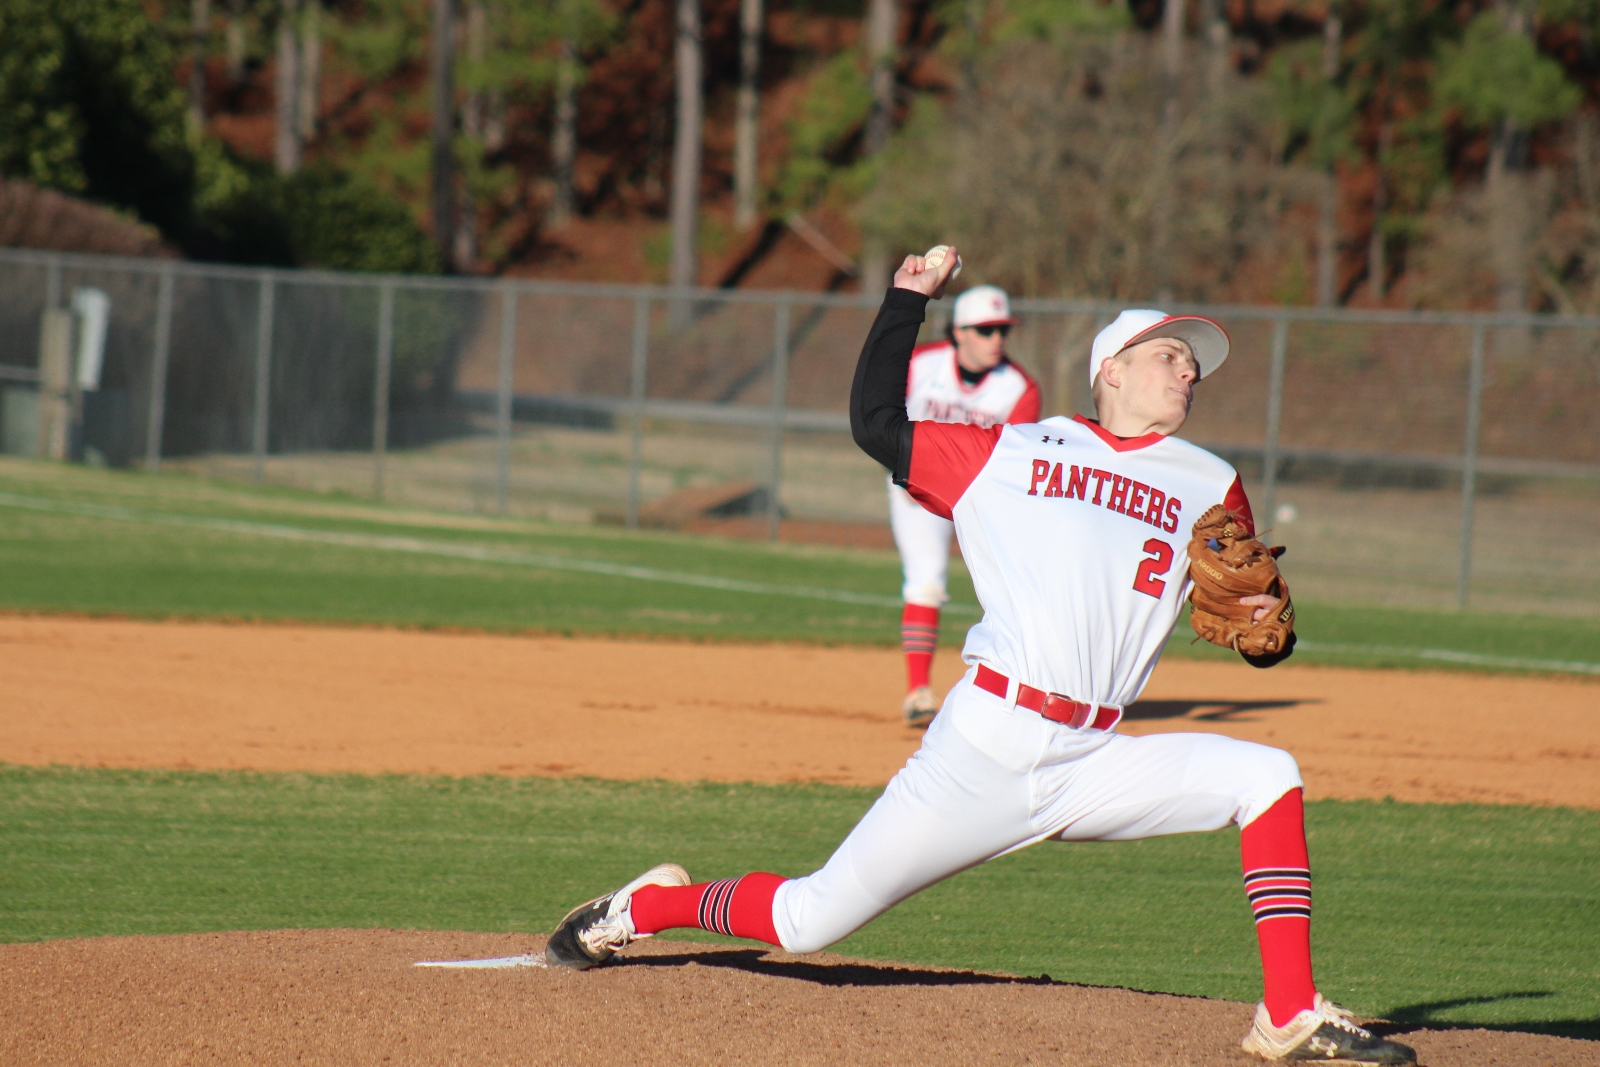 Panther Baseball Splits With Franklin Friday